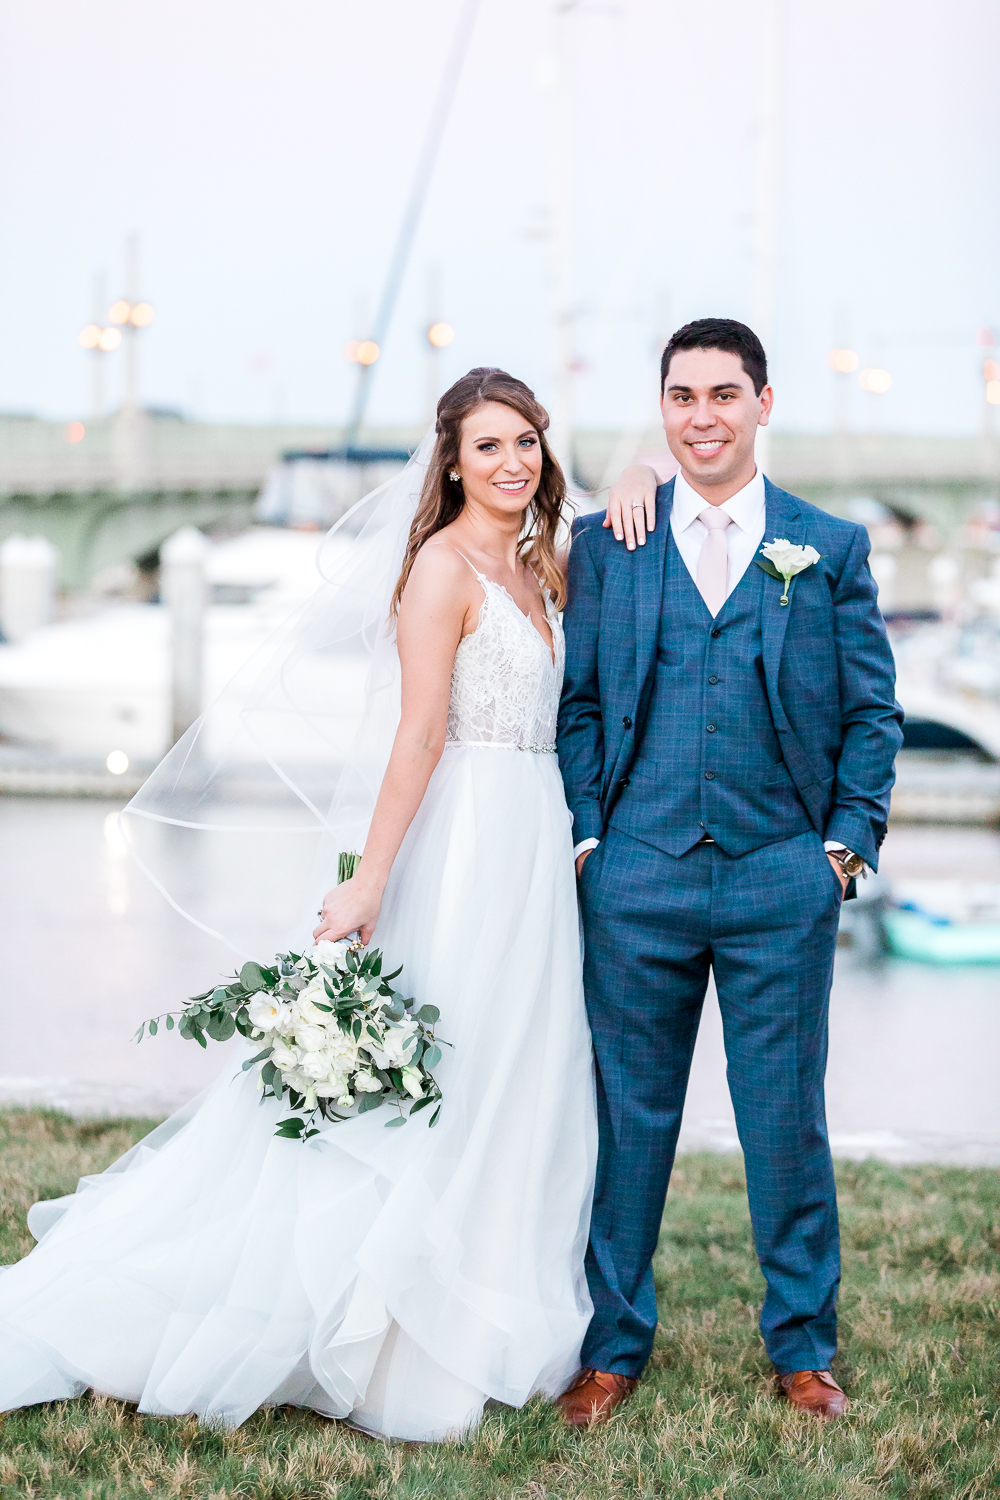 villa blanca wedding in st.augustine, fl - bride and groom by the marina during sunset + posing ideas for couples